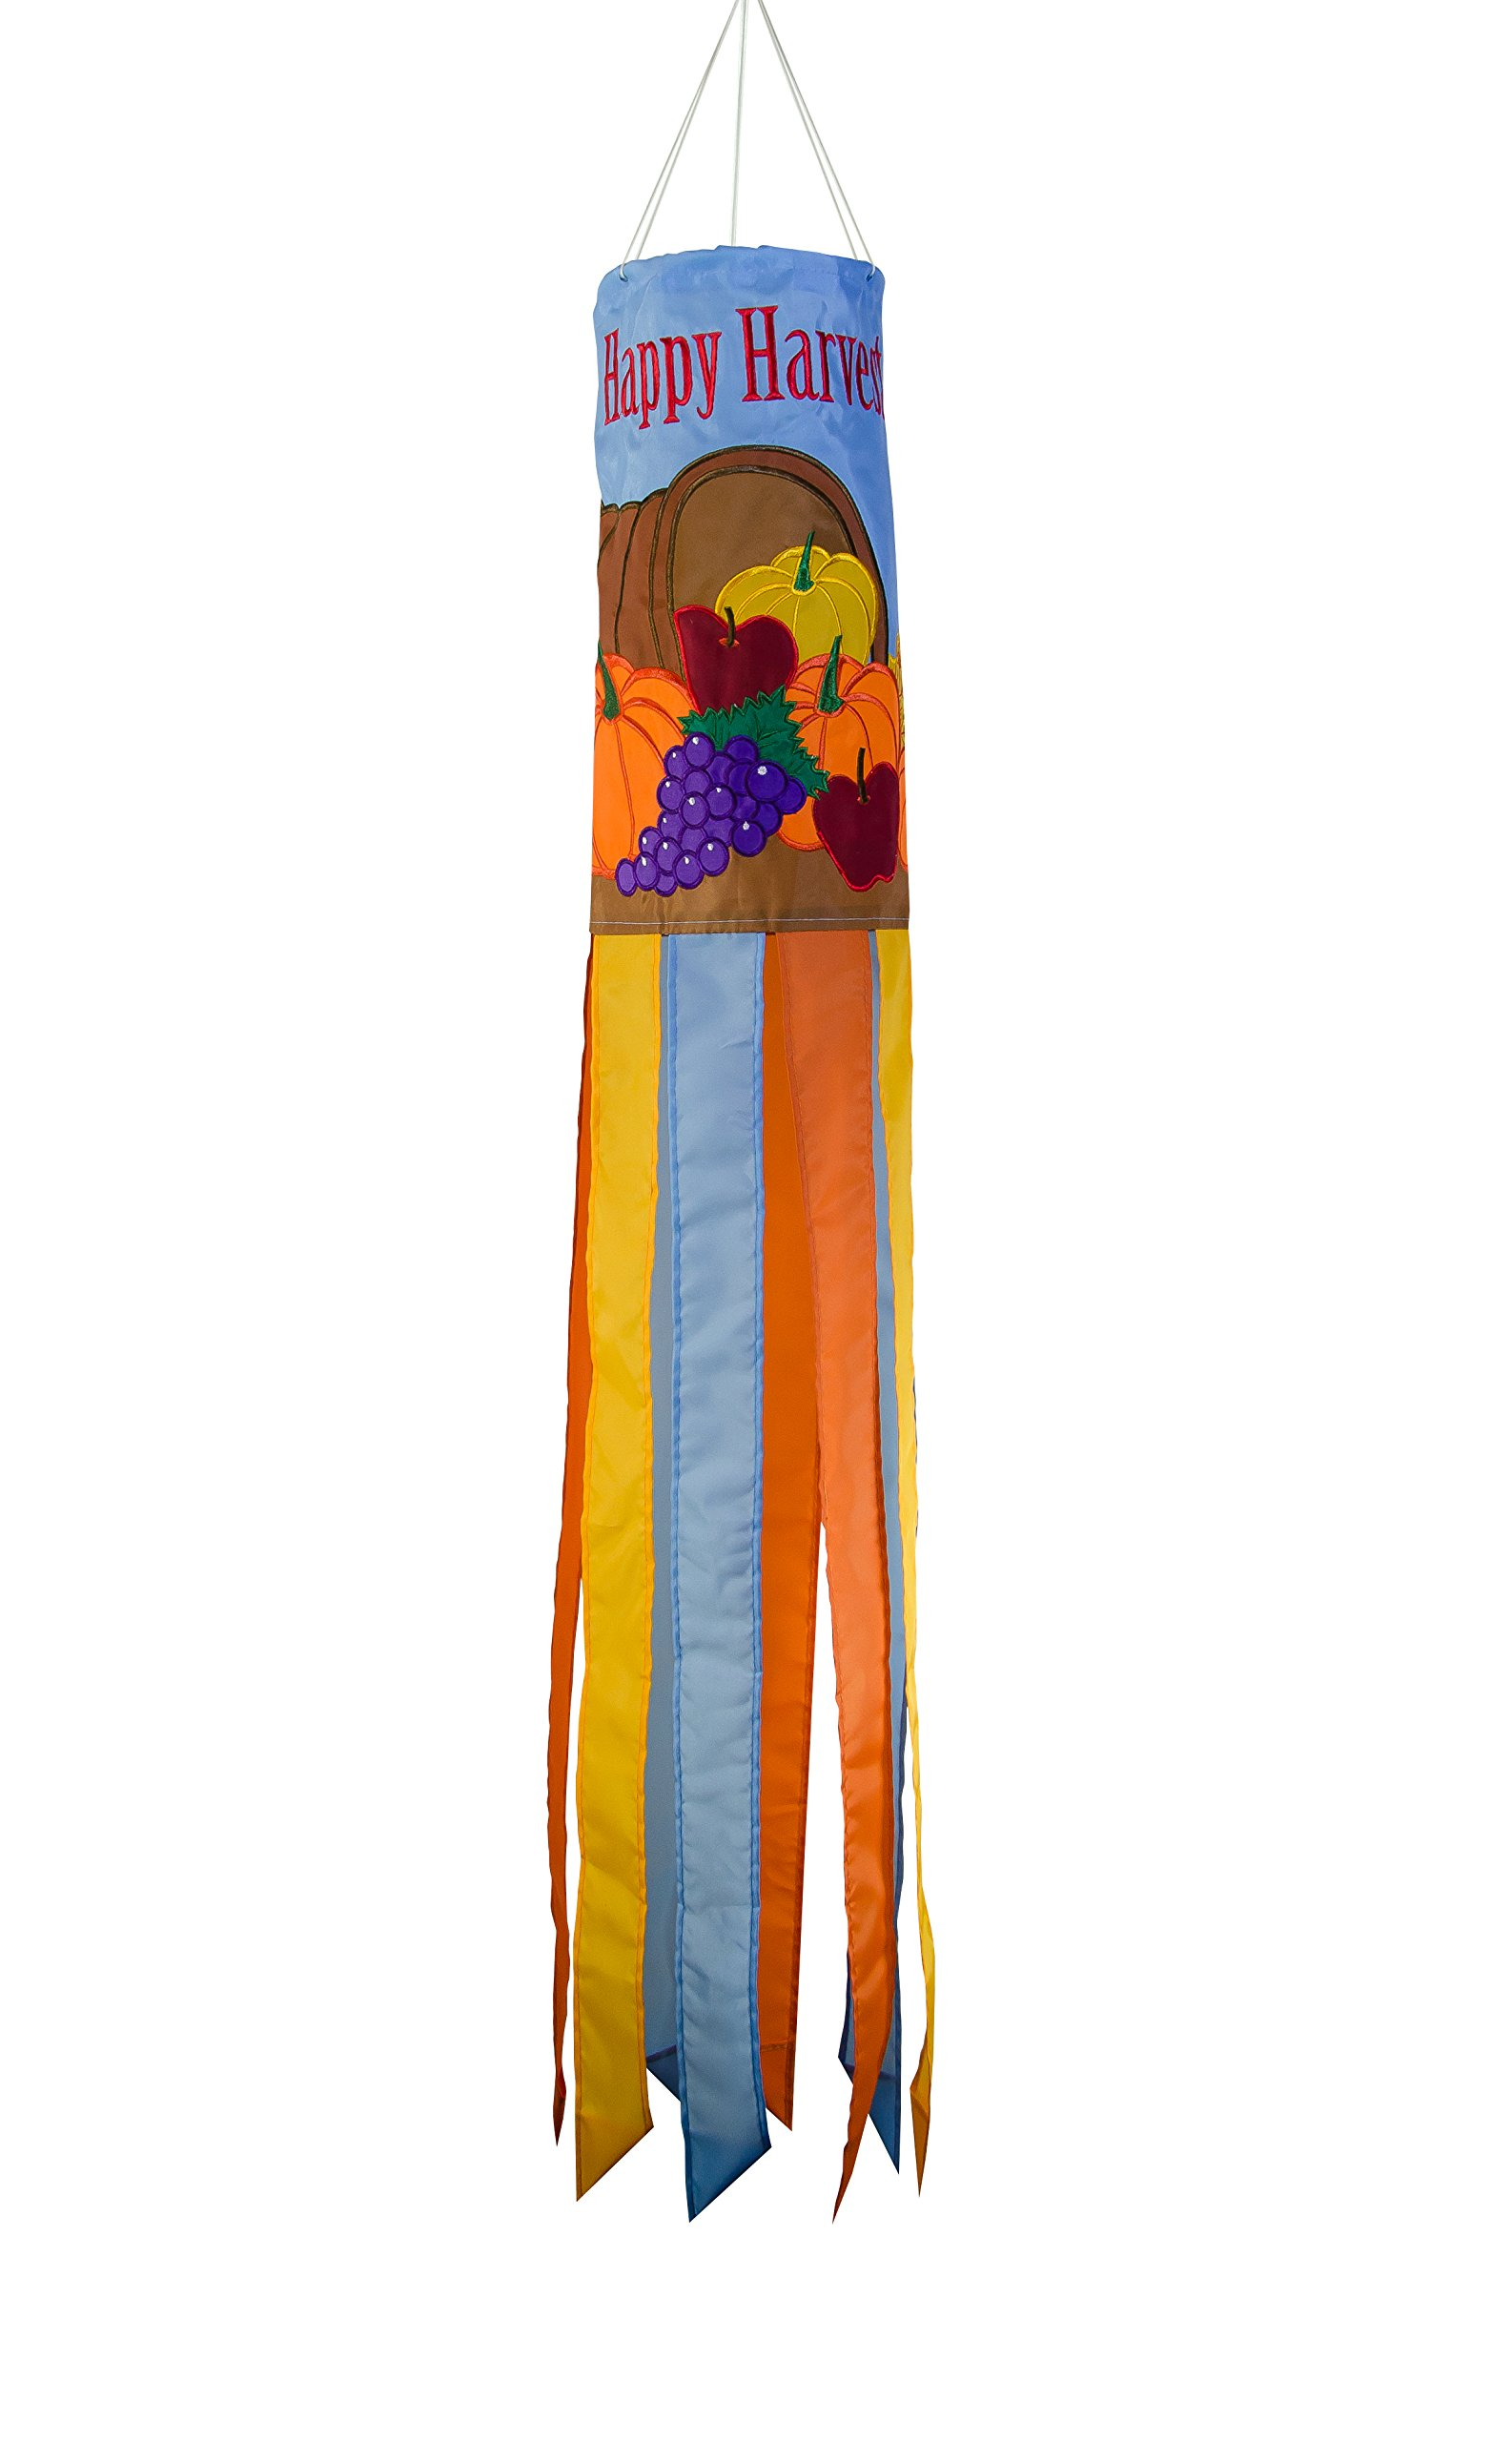 In the Breeze 5030 40 Inch Windsock Hanging Thanksgiving Decoration-Outdoor Holiday Décor, Happy Harvest